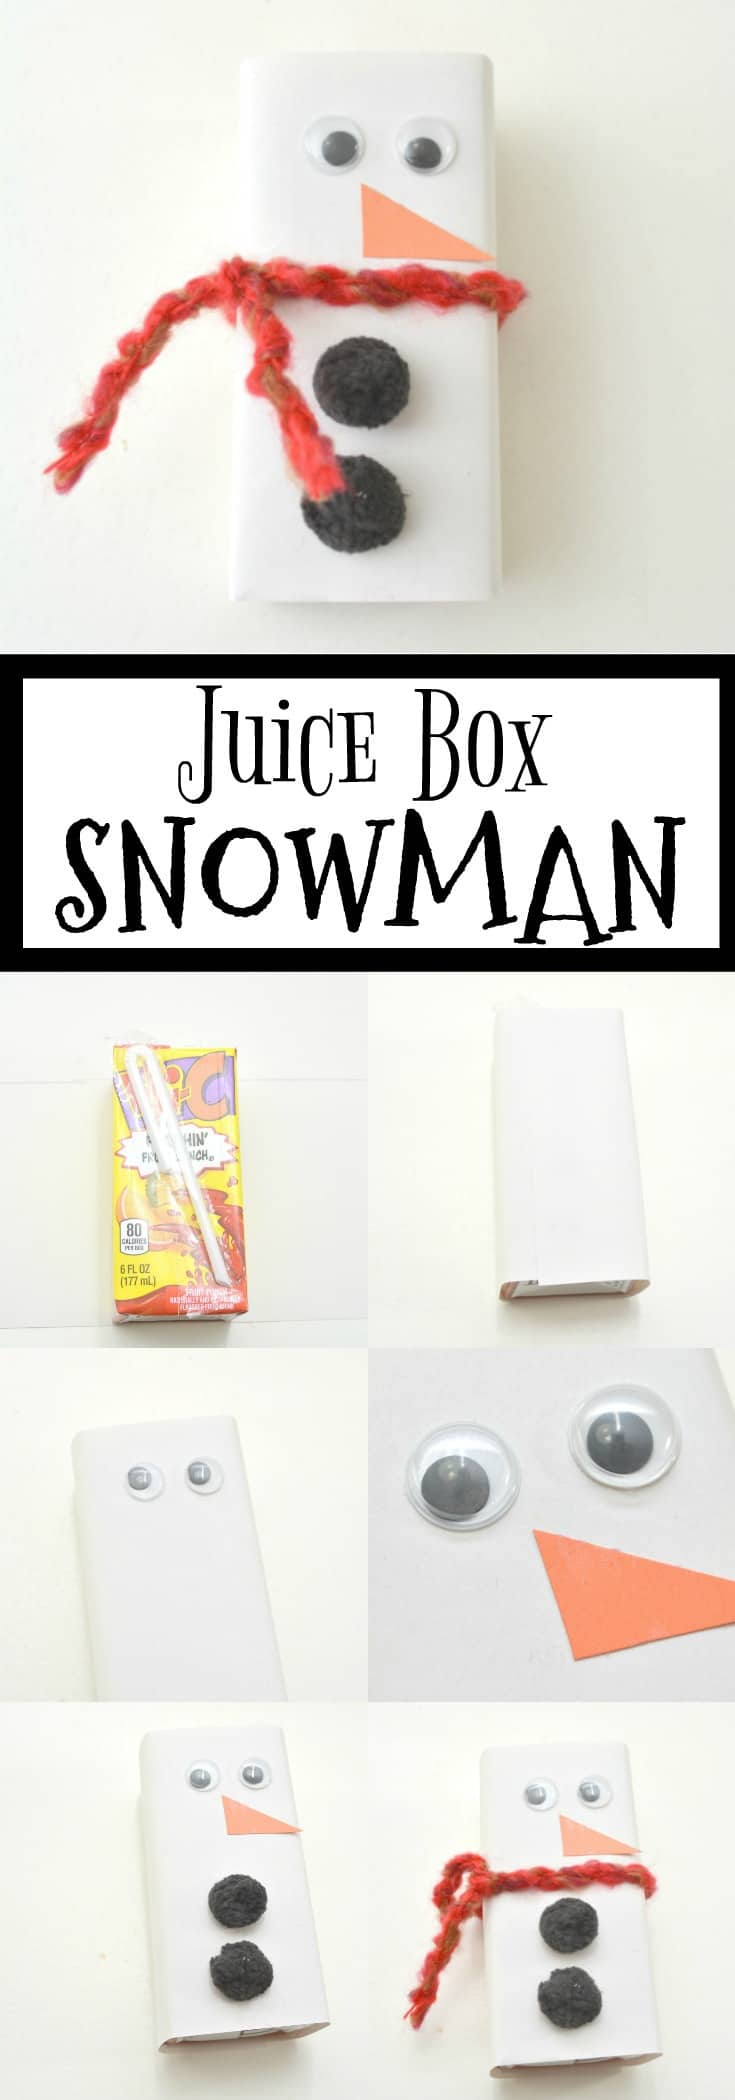 A few simple craft supplies and a juice box is all it takes to make this Juice Box Snowman that will delight your child. It's fast and easy to make too! #forkids #snowman #craft #diy via @wondermomwannab